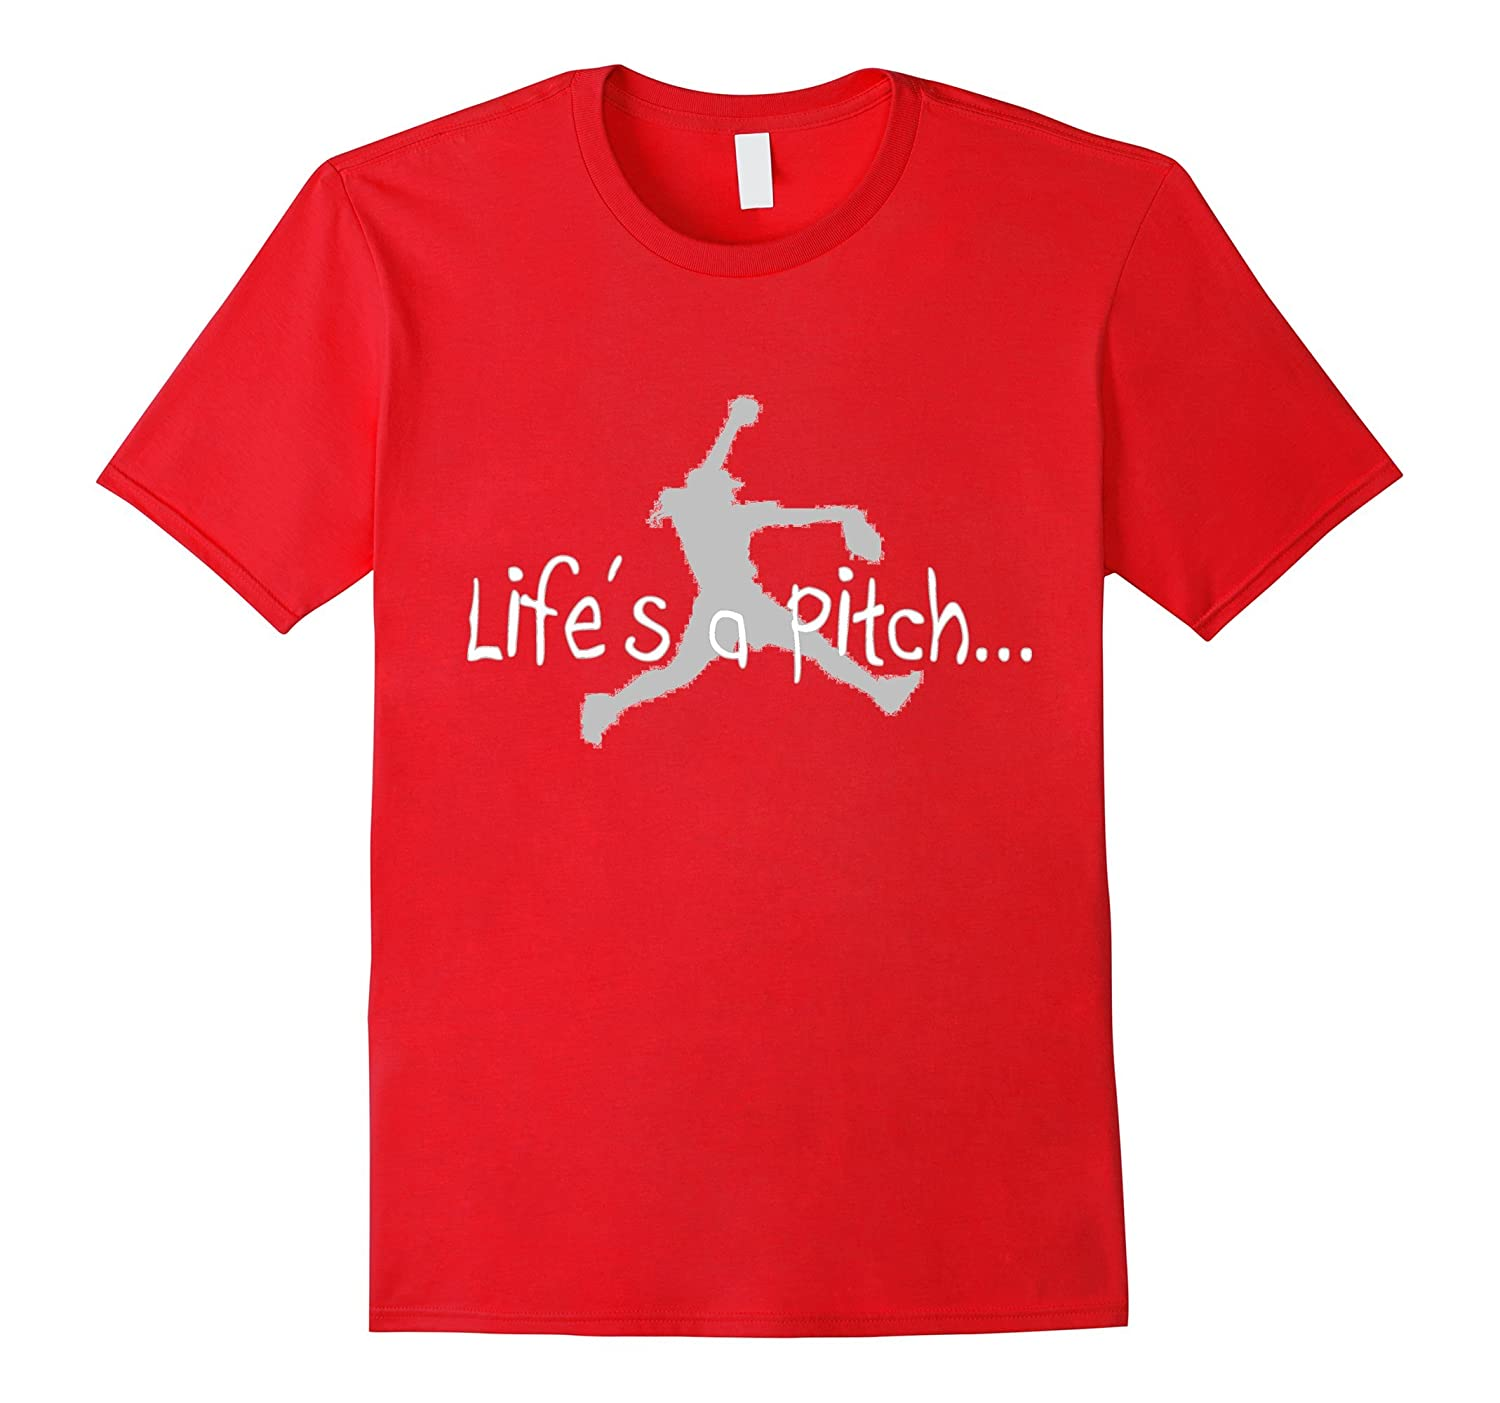 Life's a Pitch T-Shirt Fastpitch Softball Pitcher Funny Top-azvn